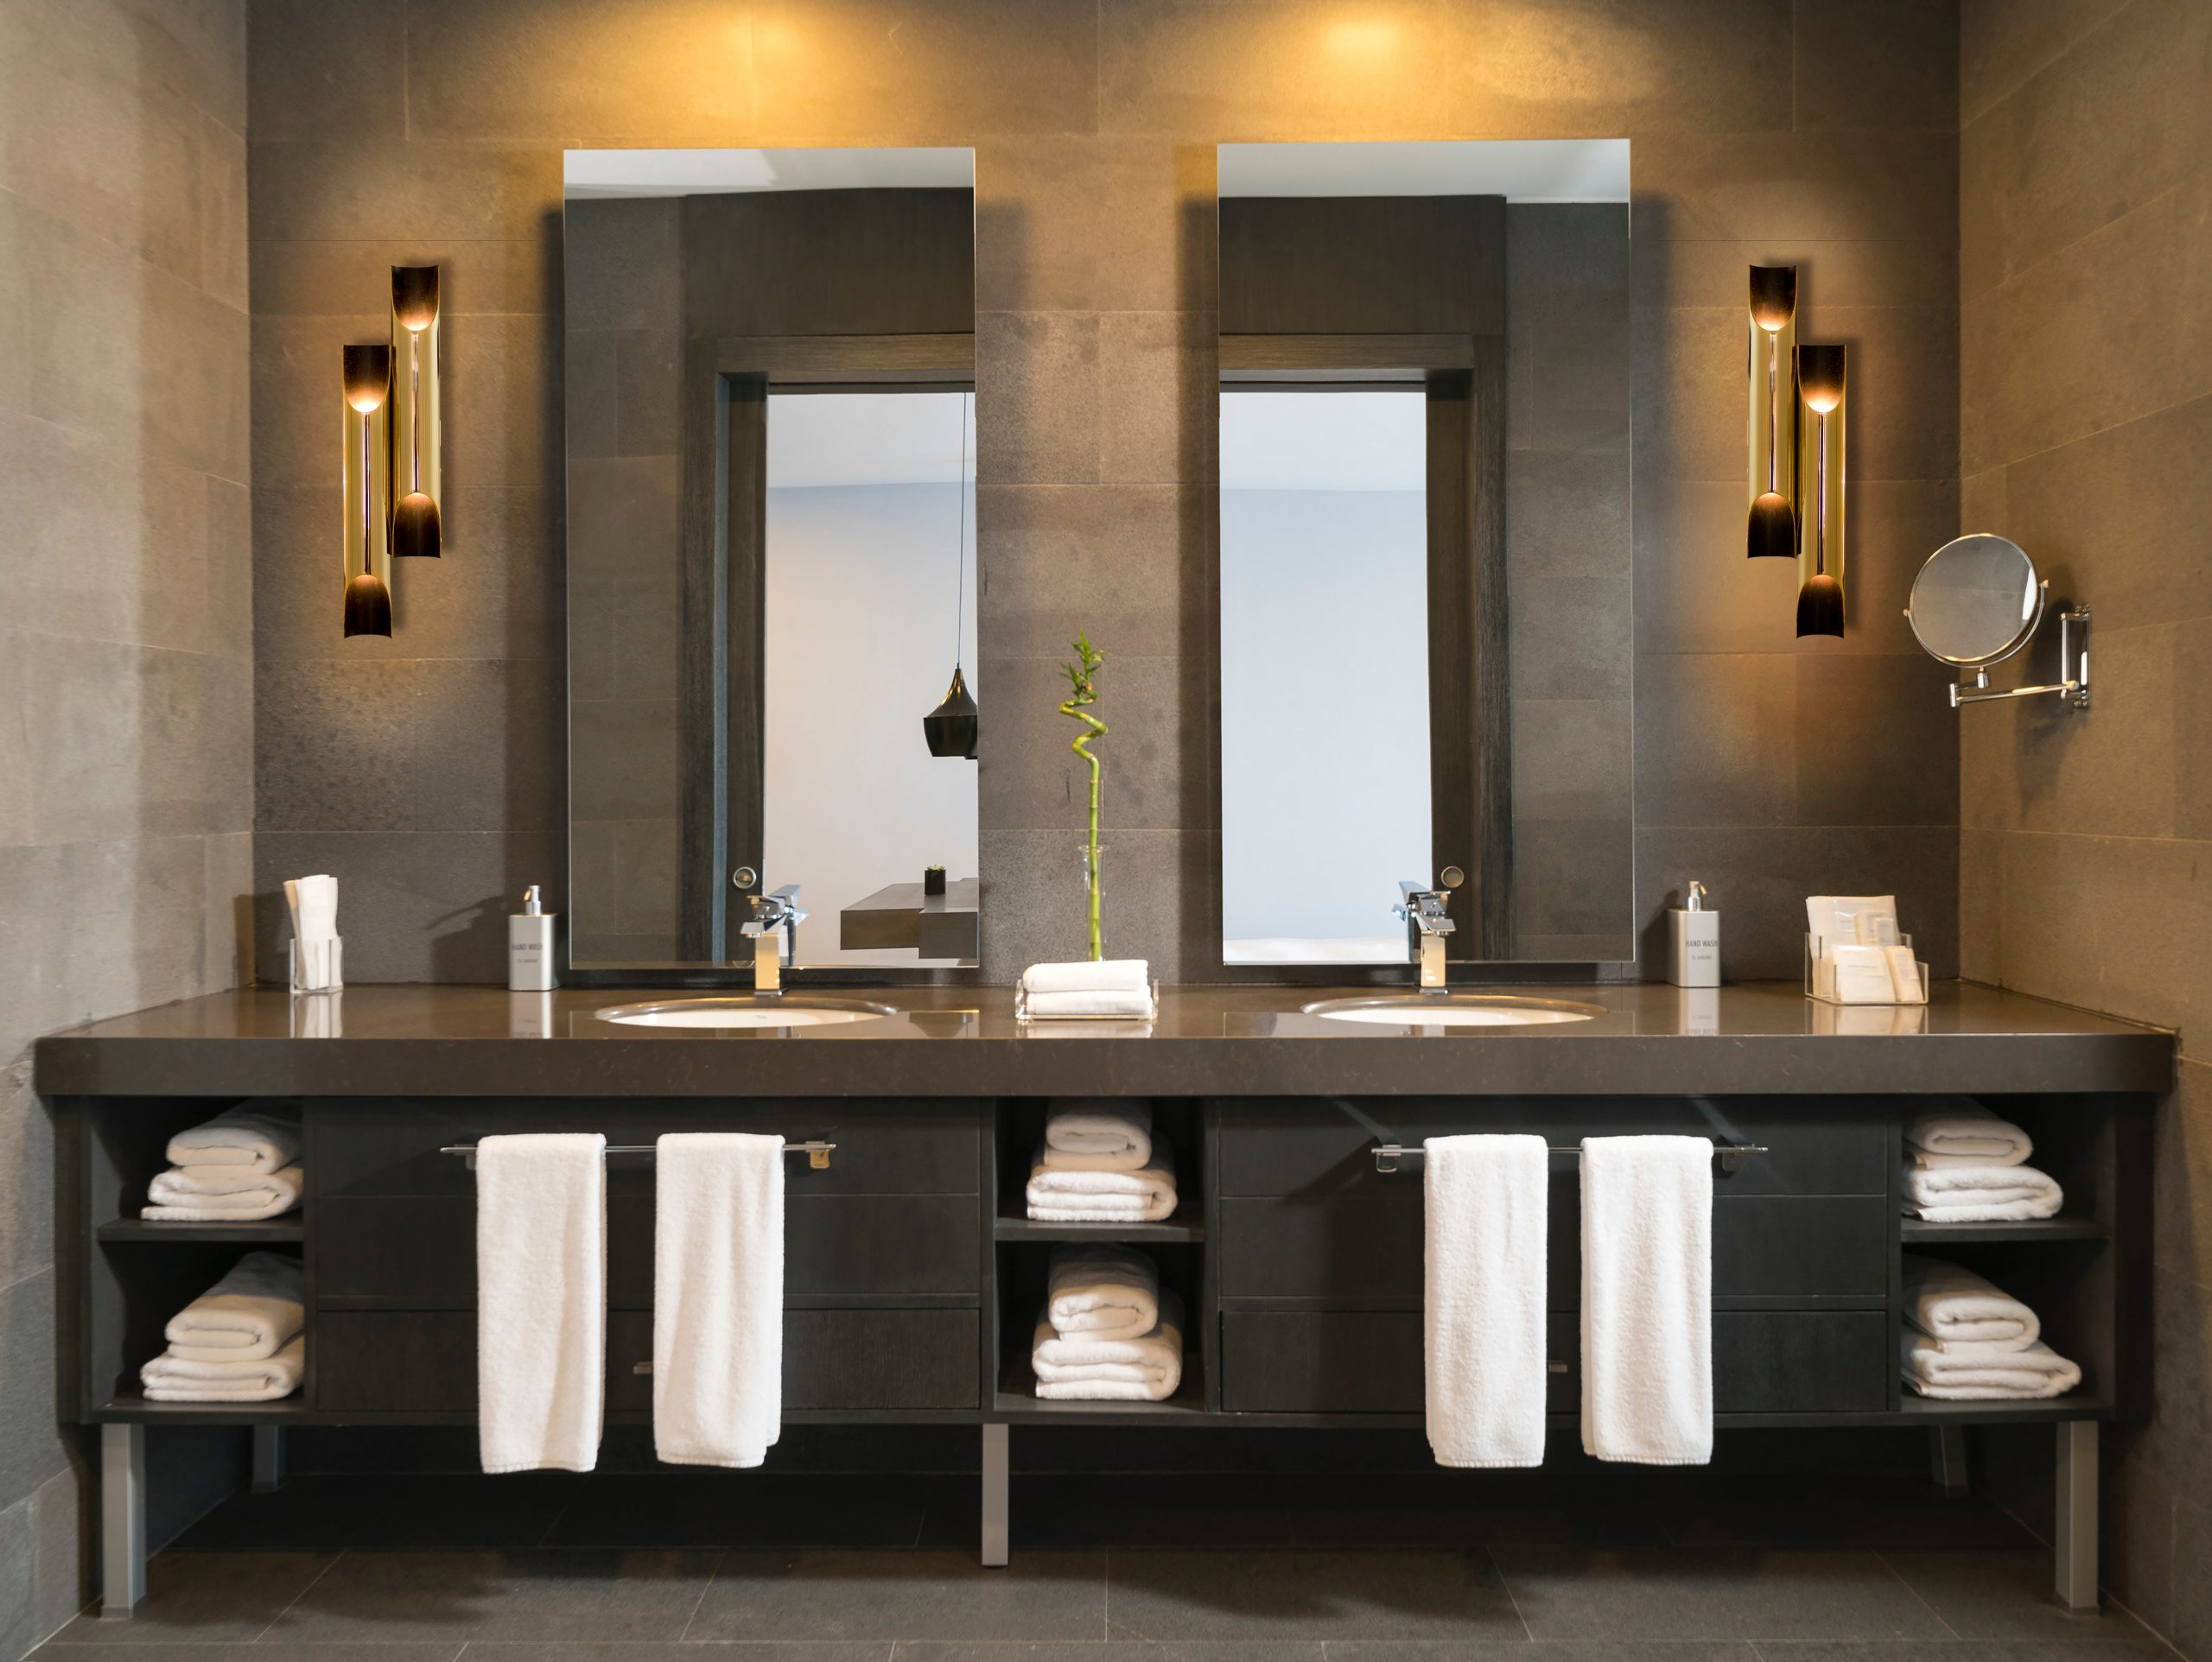 Discover Here the New Trends in America Home Design in 2021! america home design Discover Here the New Trends in America Home Design in 2021! 9 2 scaled